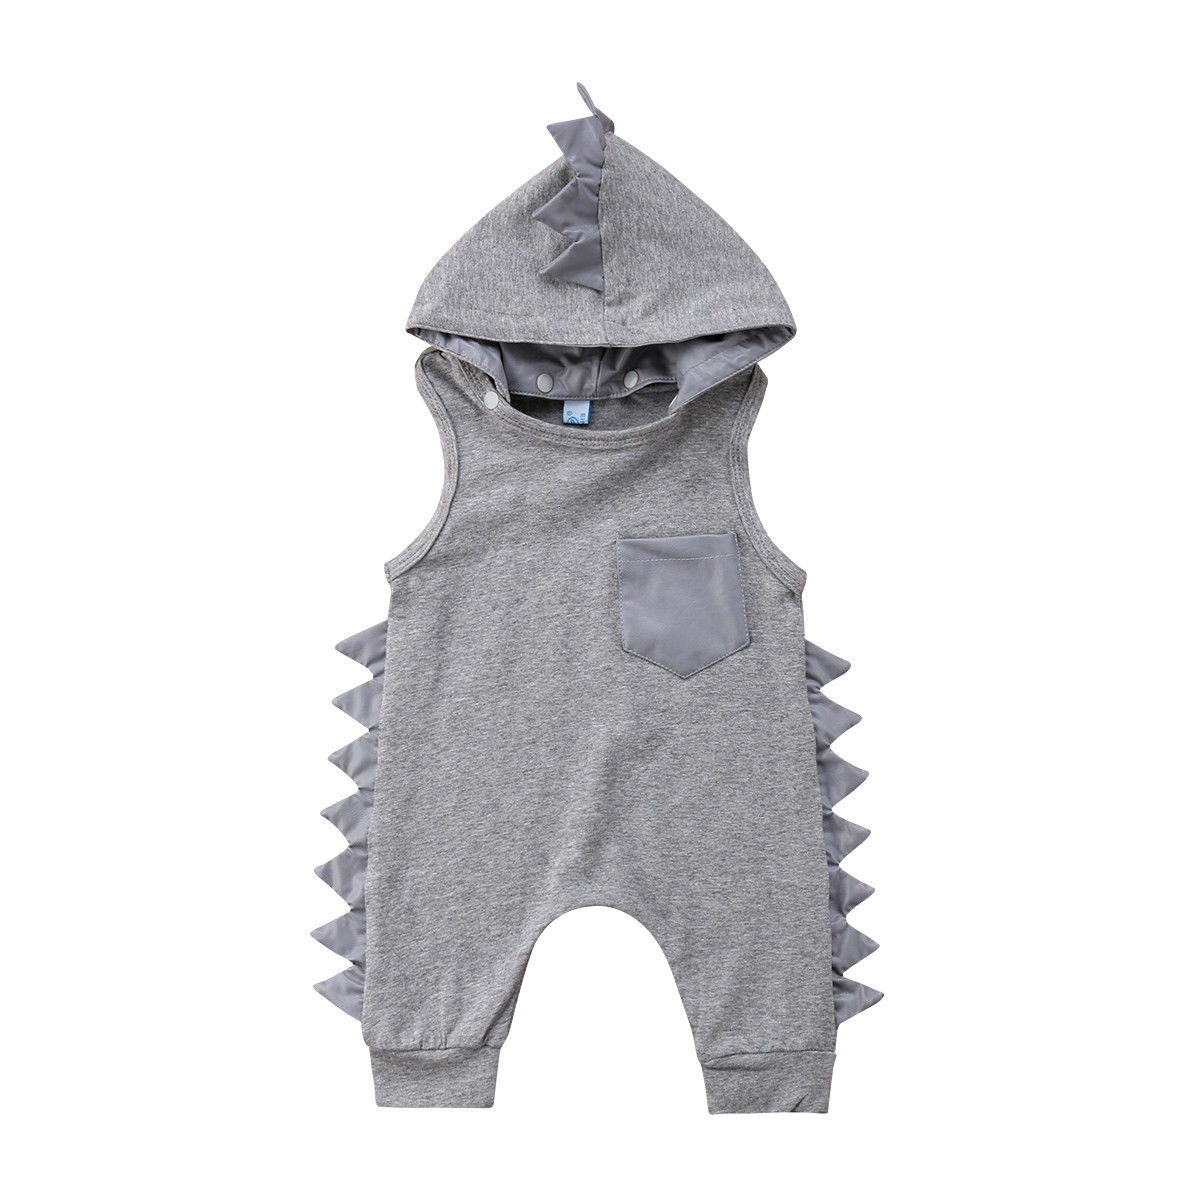 Newborn Baby Clothes Girl Boy Romper Cotton Hooded Outfits Dinosaur Hat Long Sleeve Romper Gray